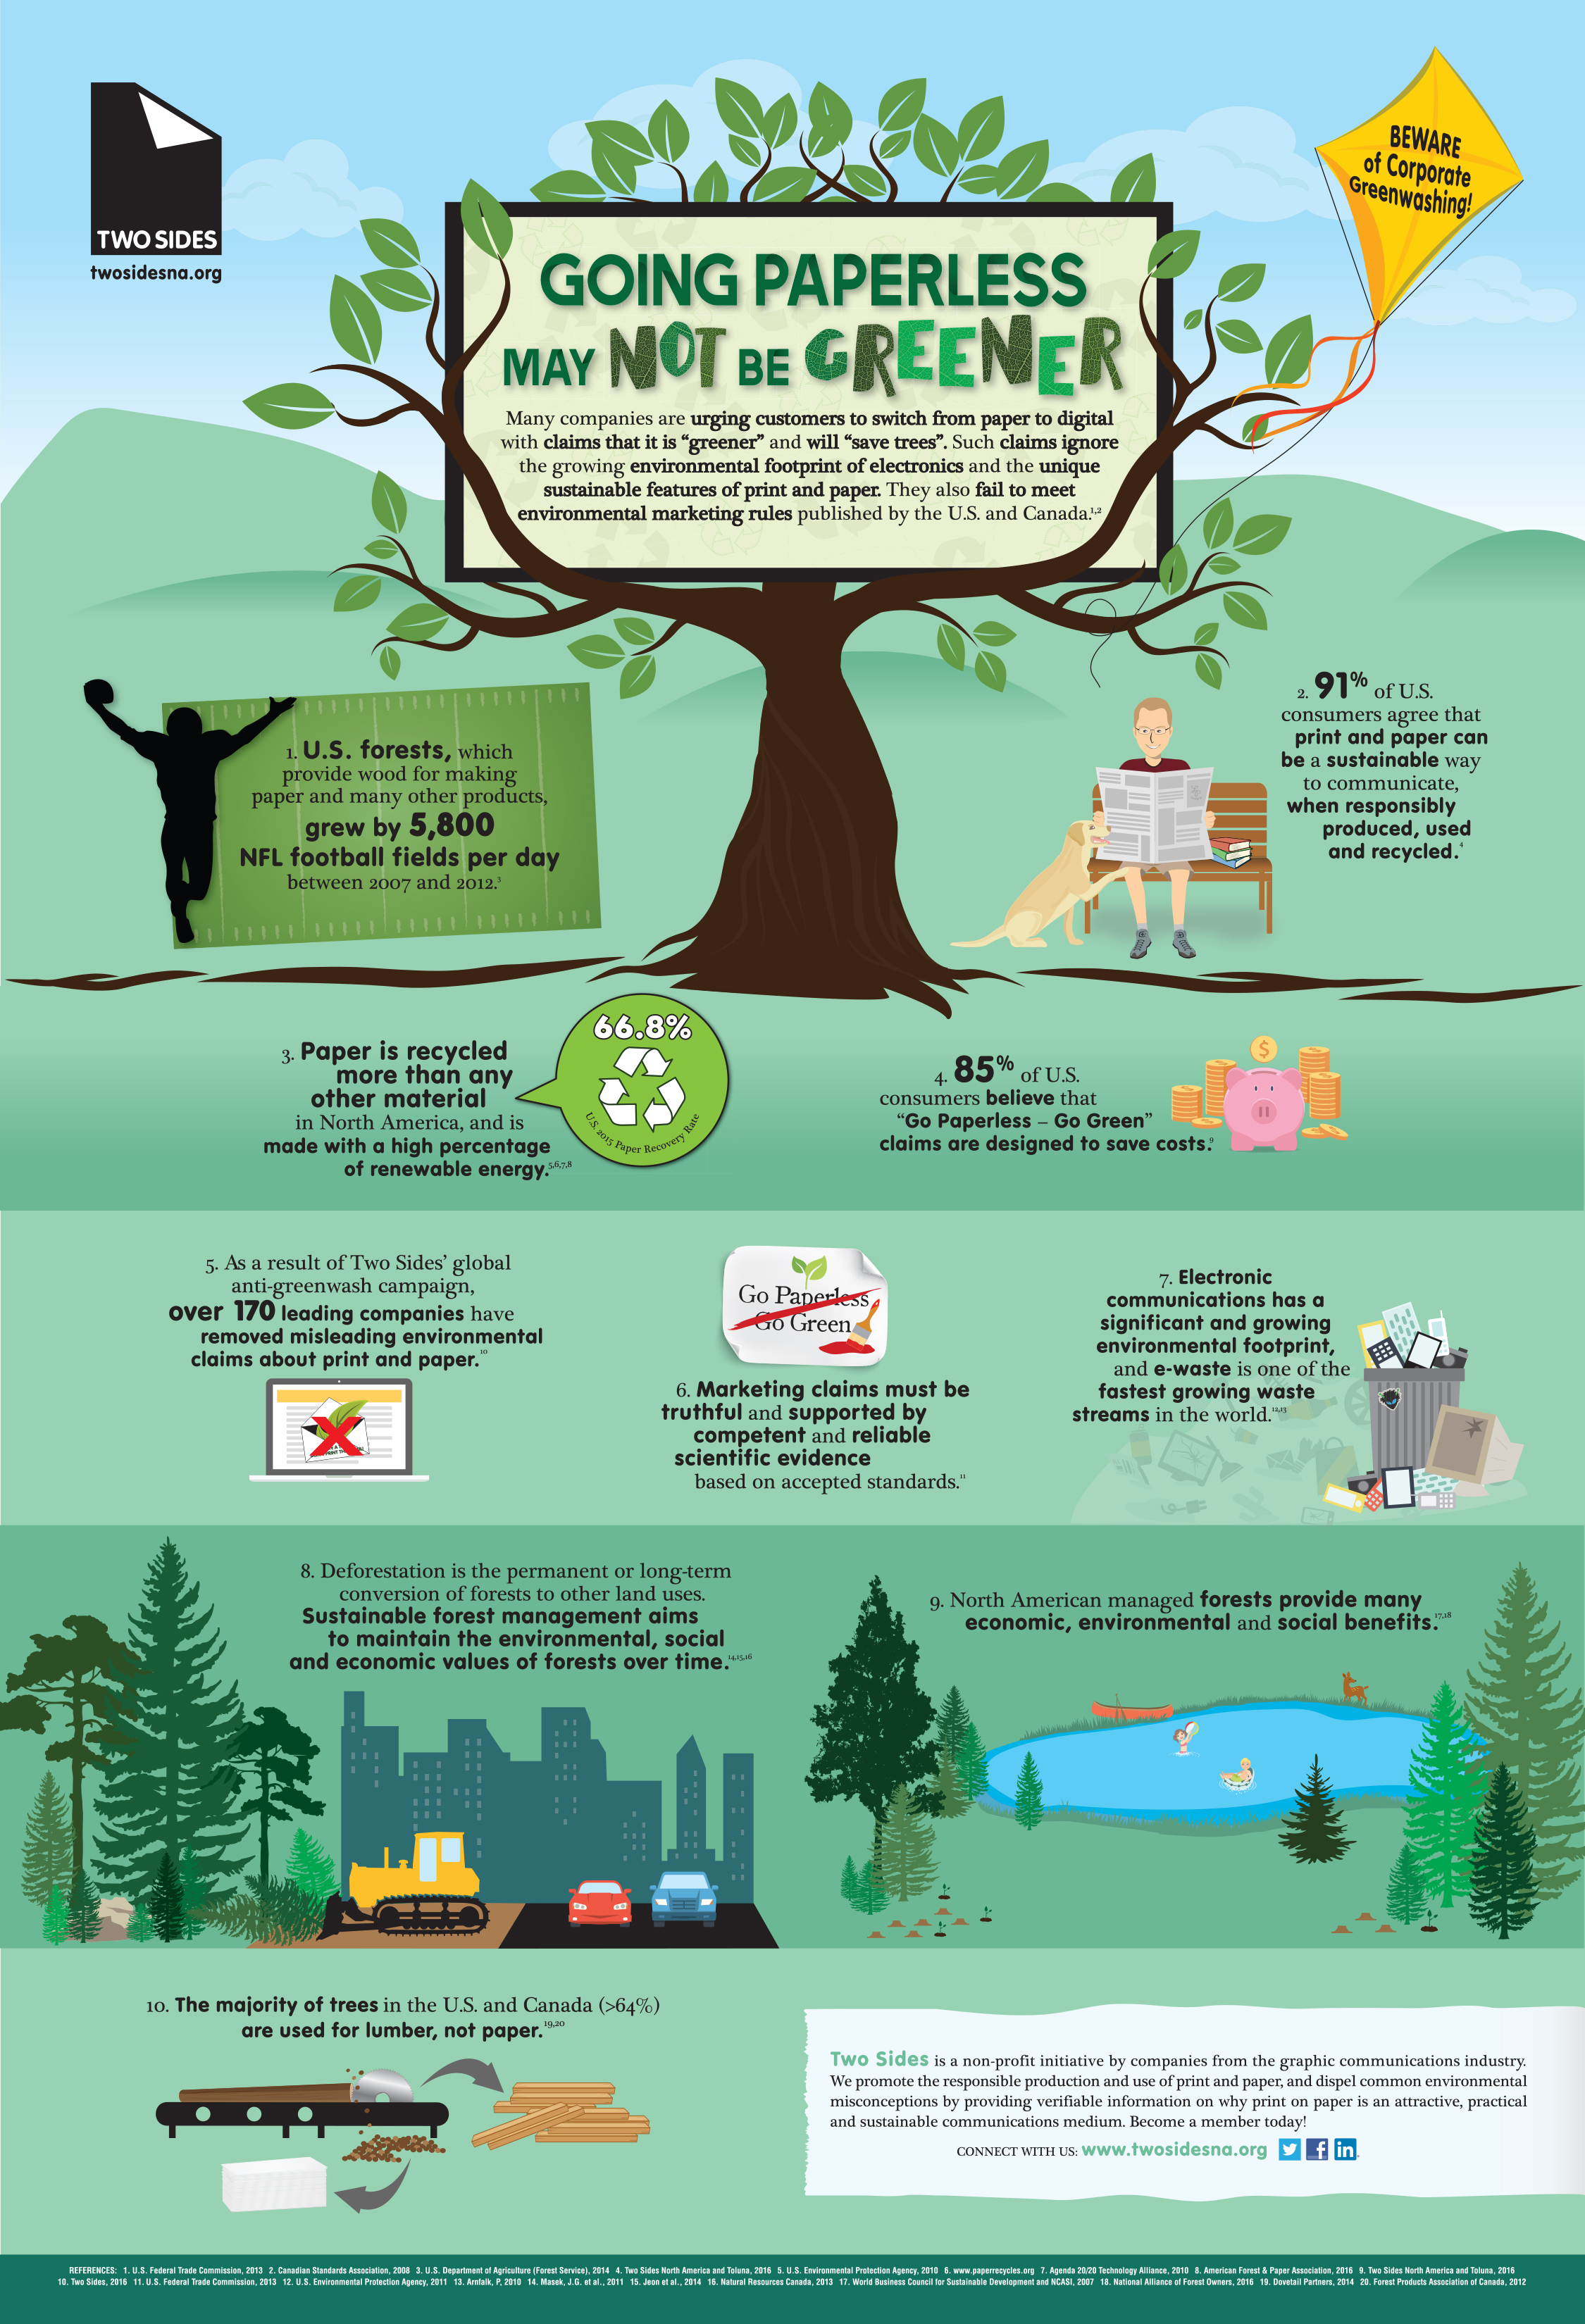 The New Infographic Is Designed To Expose Corporate Greenwashing Due Misleading Environmental Claims Like Go Green Paperless And Bust Key Myths